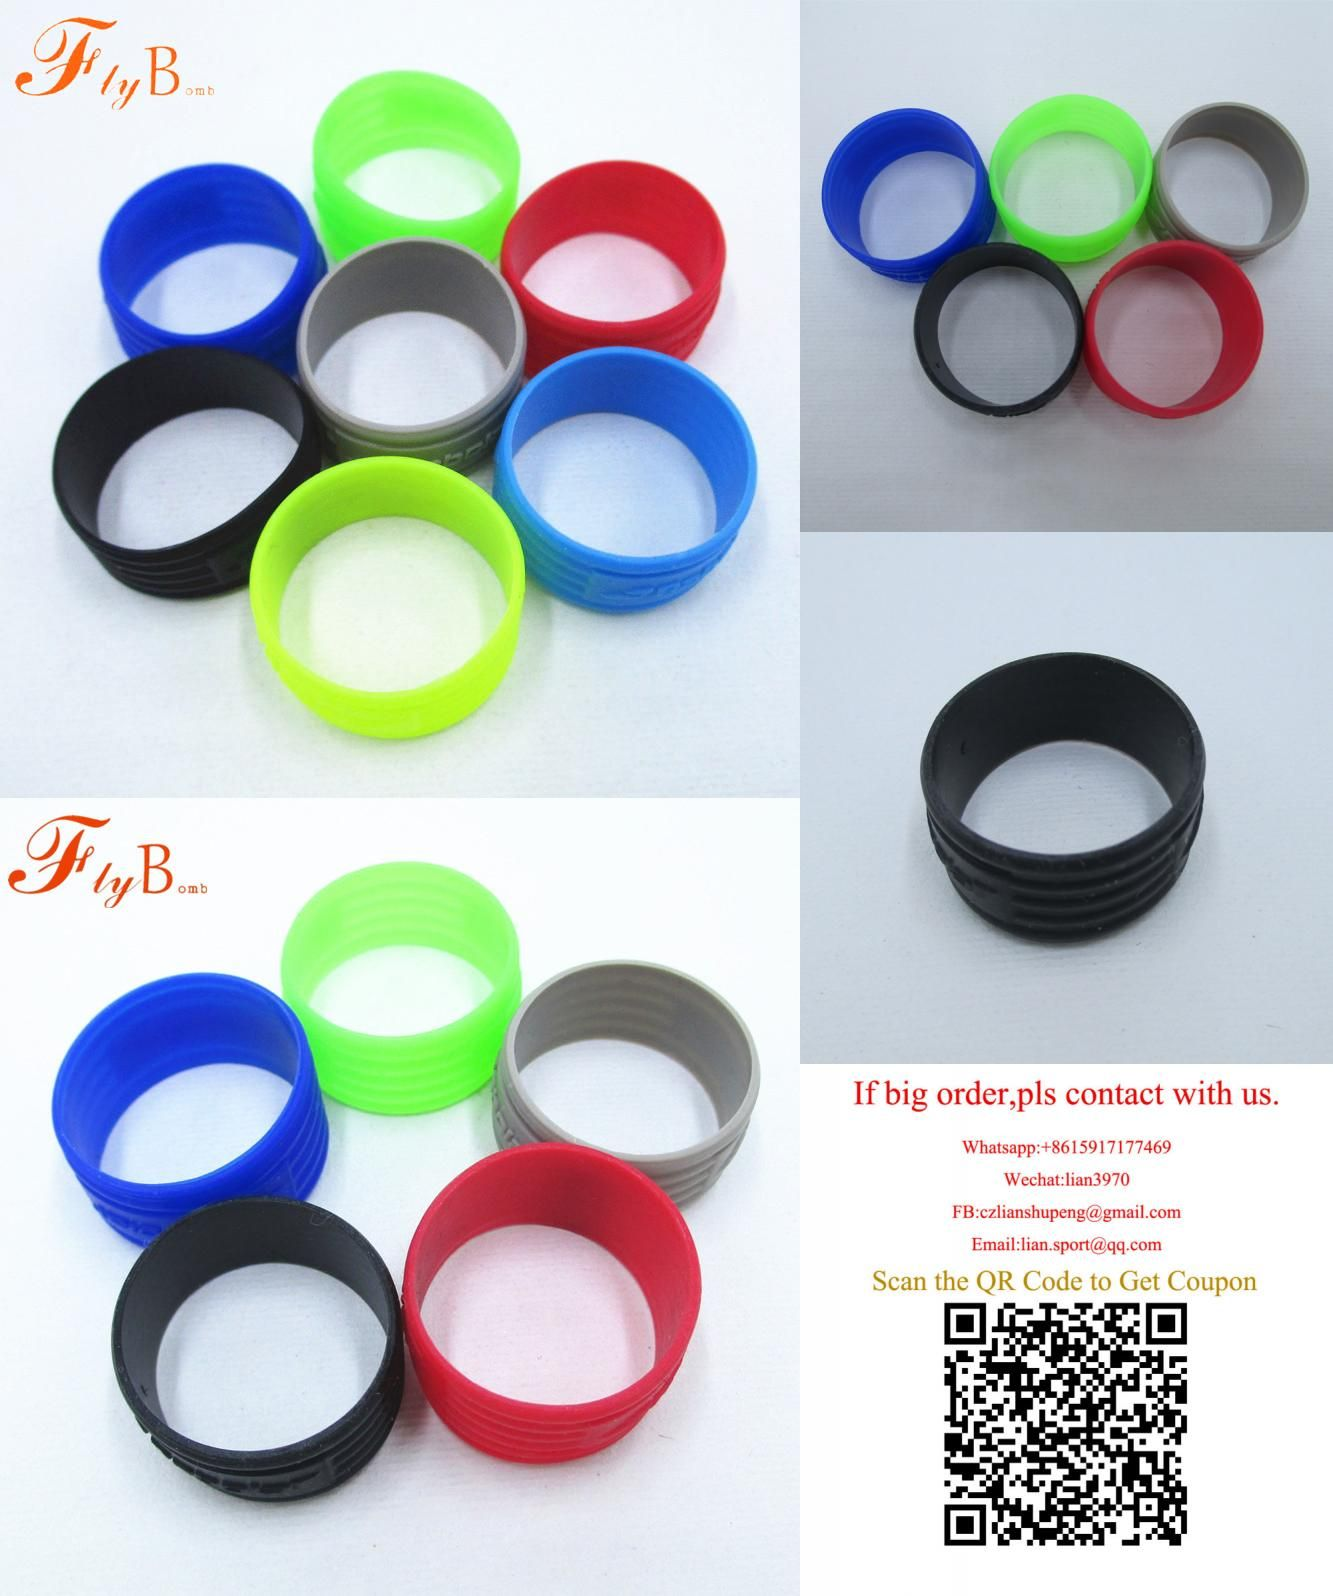 Visit To Buy Tennis Racket Handle S Silicone Ring Tenis Racquet Overgrip Use Wrap Various Colors L354 Advertisem Racquets Racquet Sports Tennis Accessories